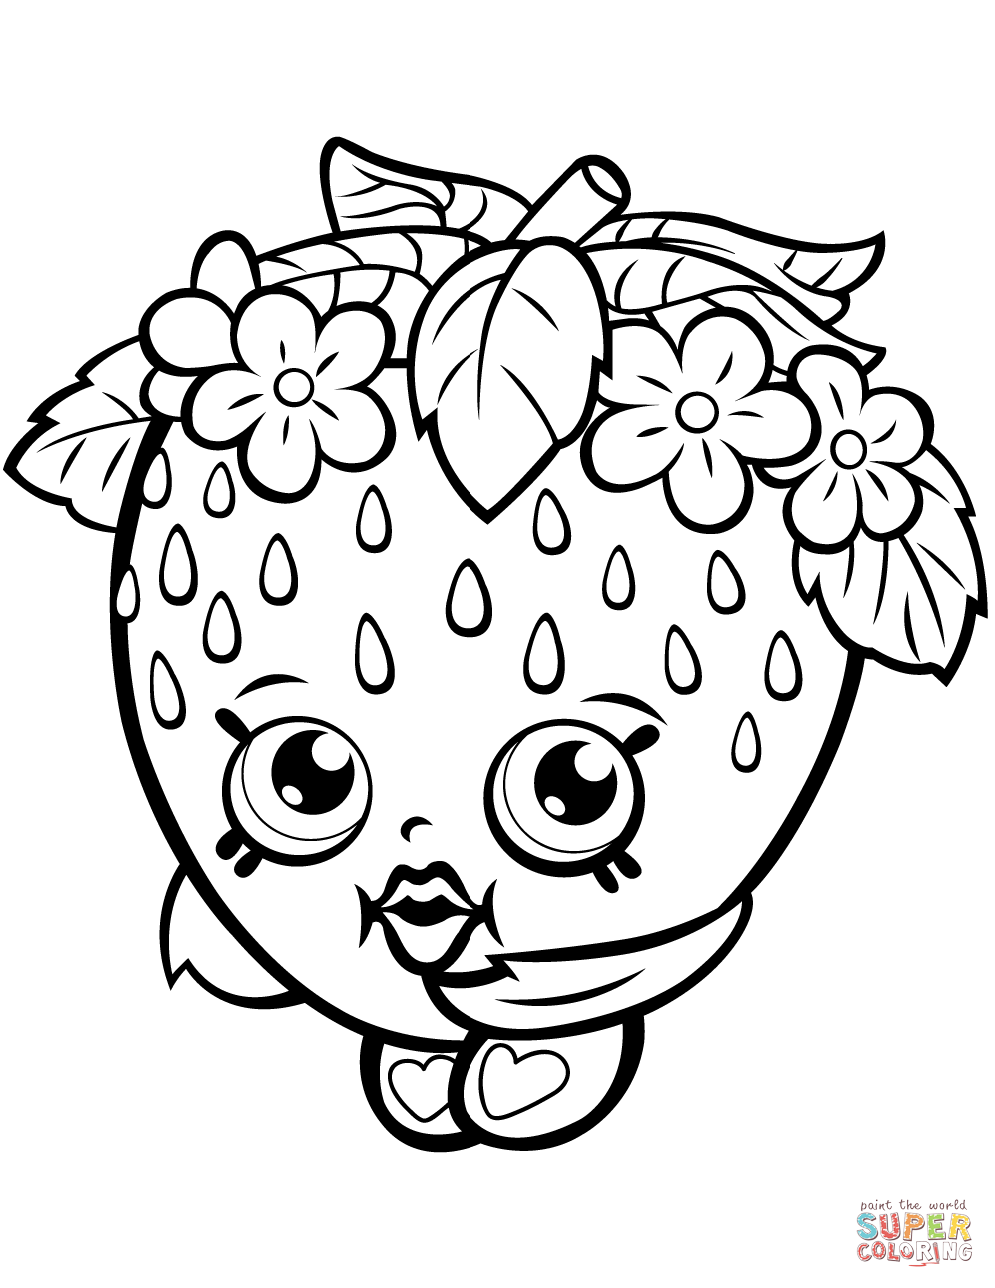 Kooky Cookie Coloring Pages